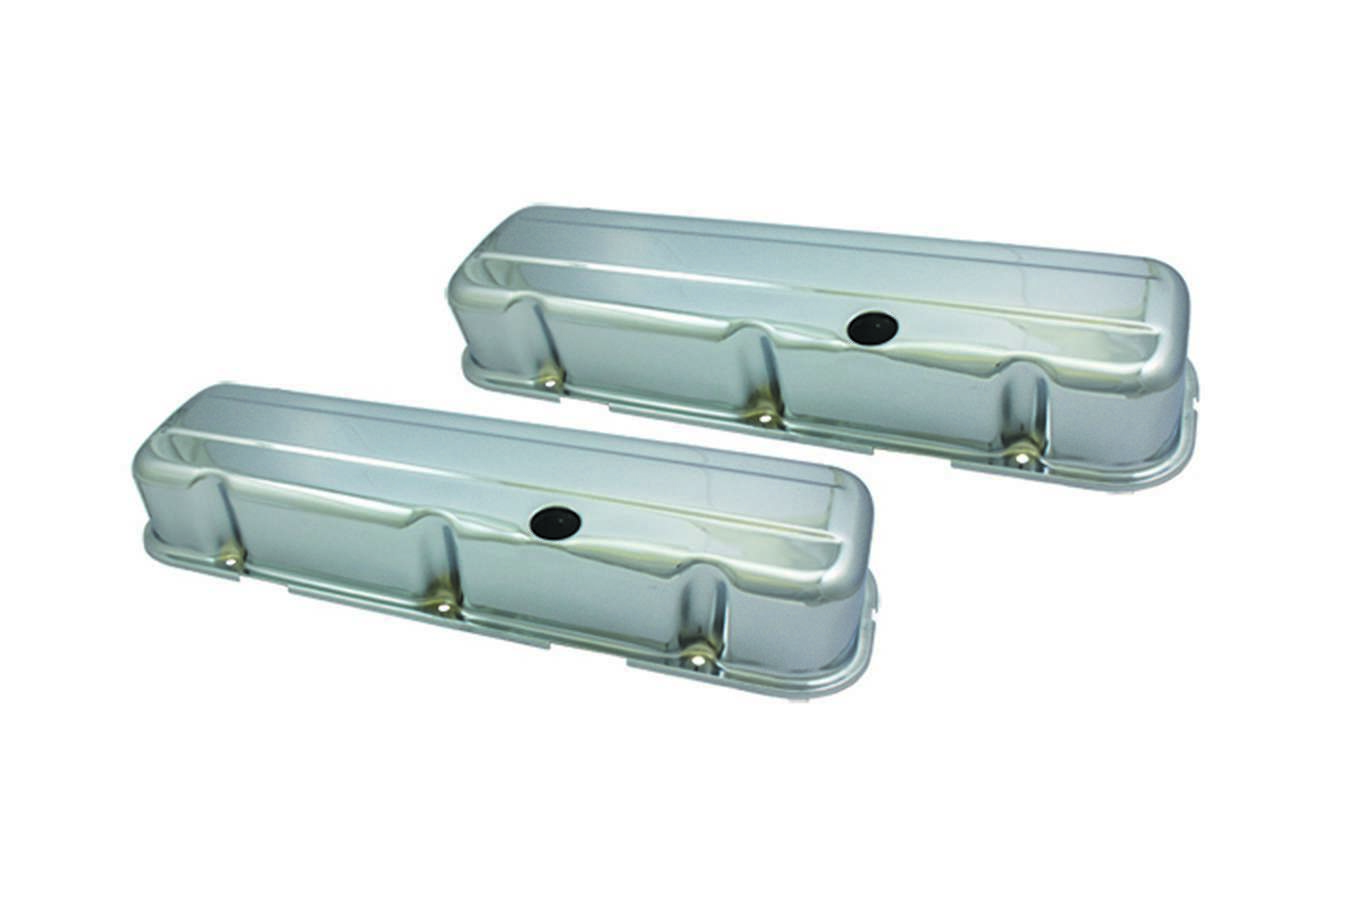 Specialty Products 8238 Valve Cover, Tall, Baffled, Breather Holes, Steel, Chrome, Big Block Chevy, Pair